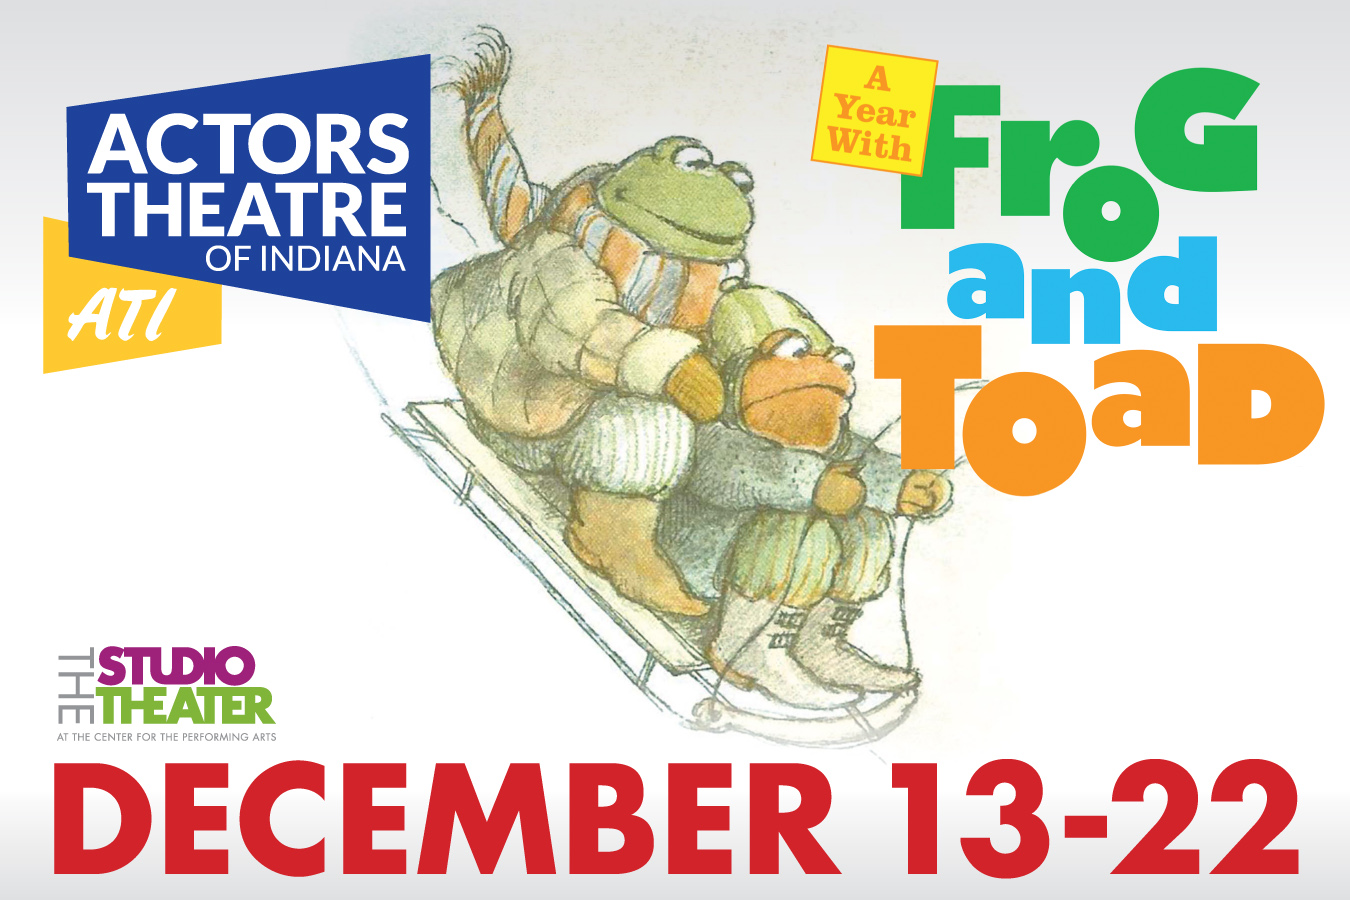 Ati S A Year With Frog Amp Toad At The Studio Theater In